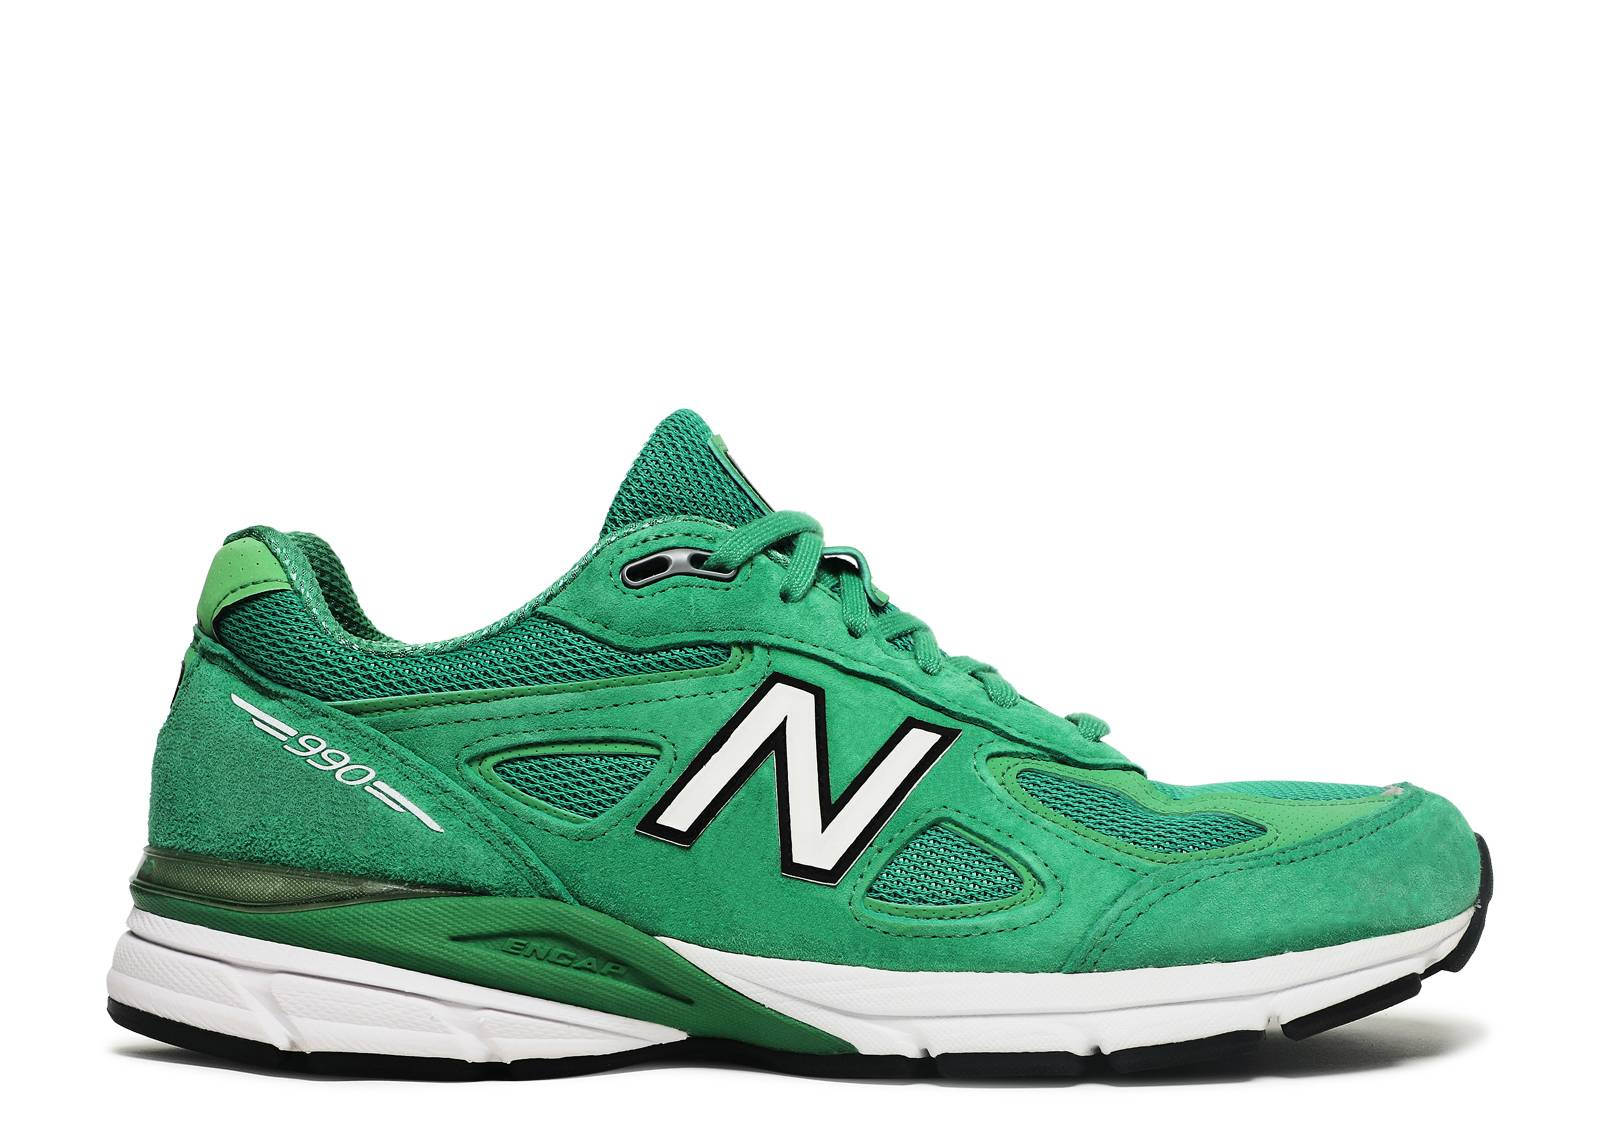 1a26bbb6a668 New Balance Sneakers for Men